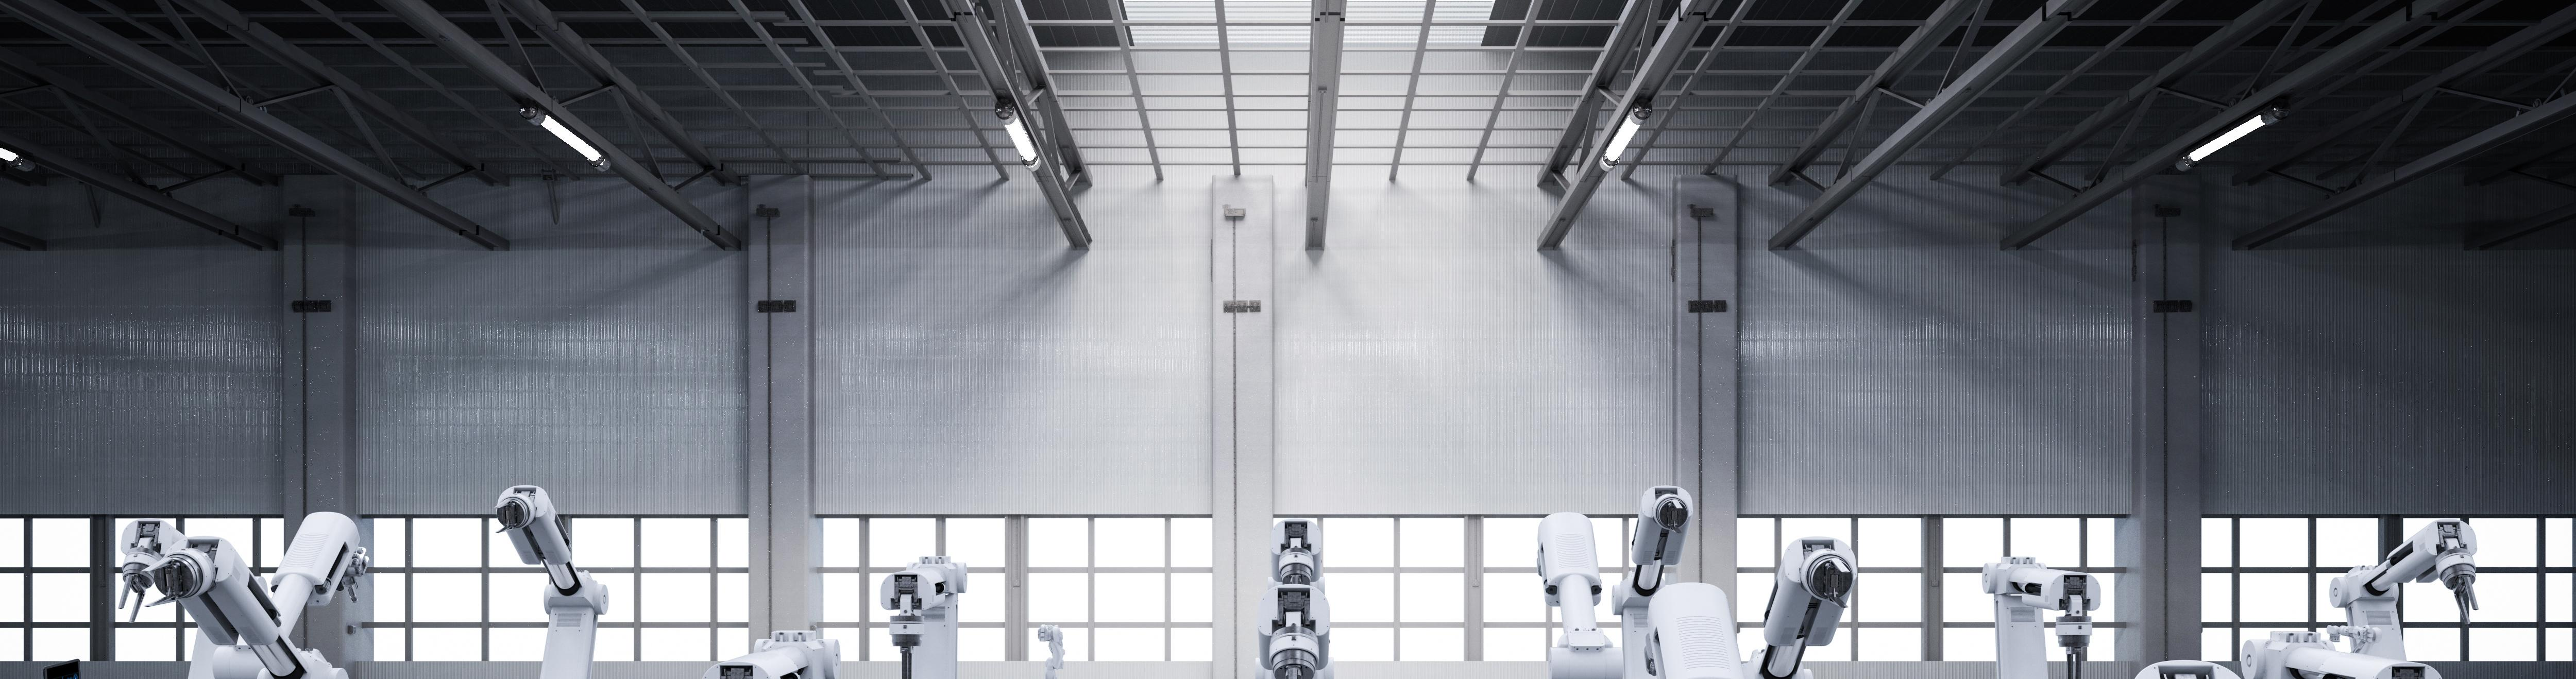 Robot arms with conveyor, banner image